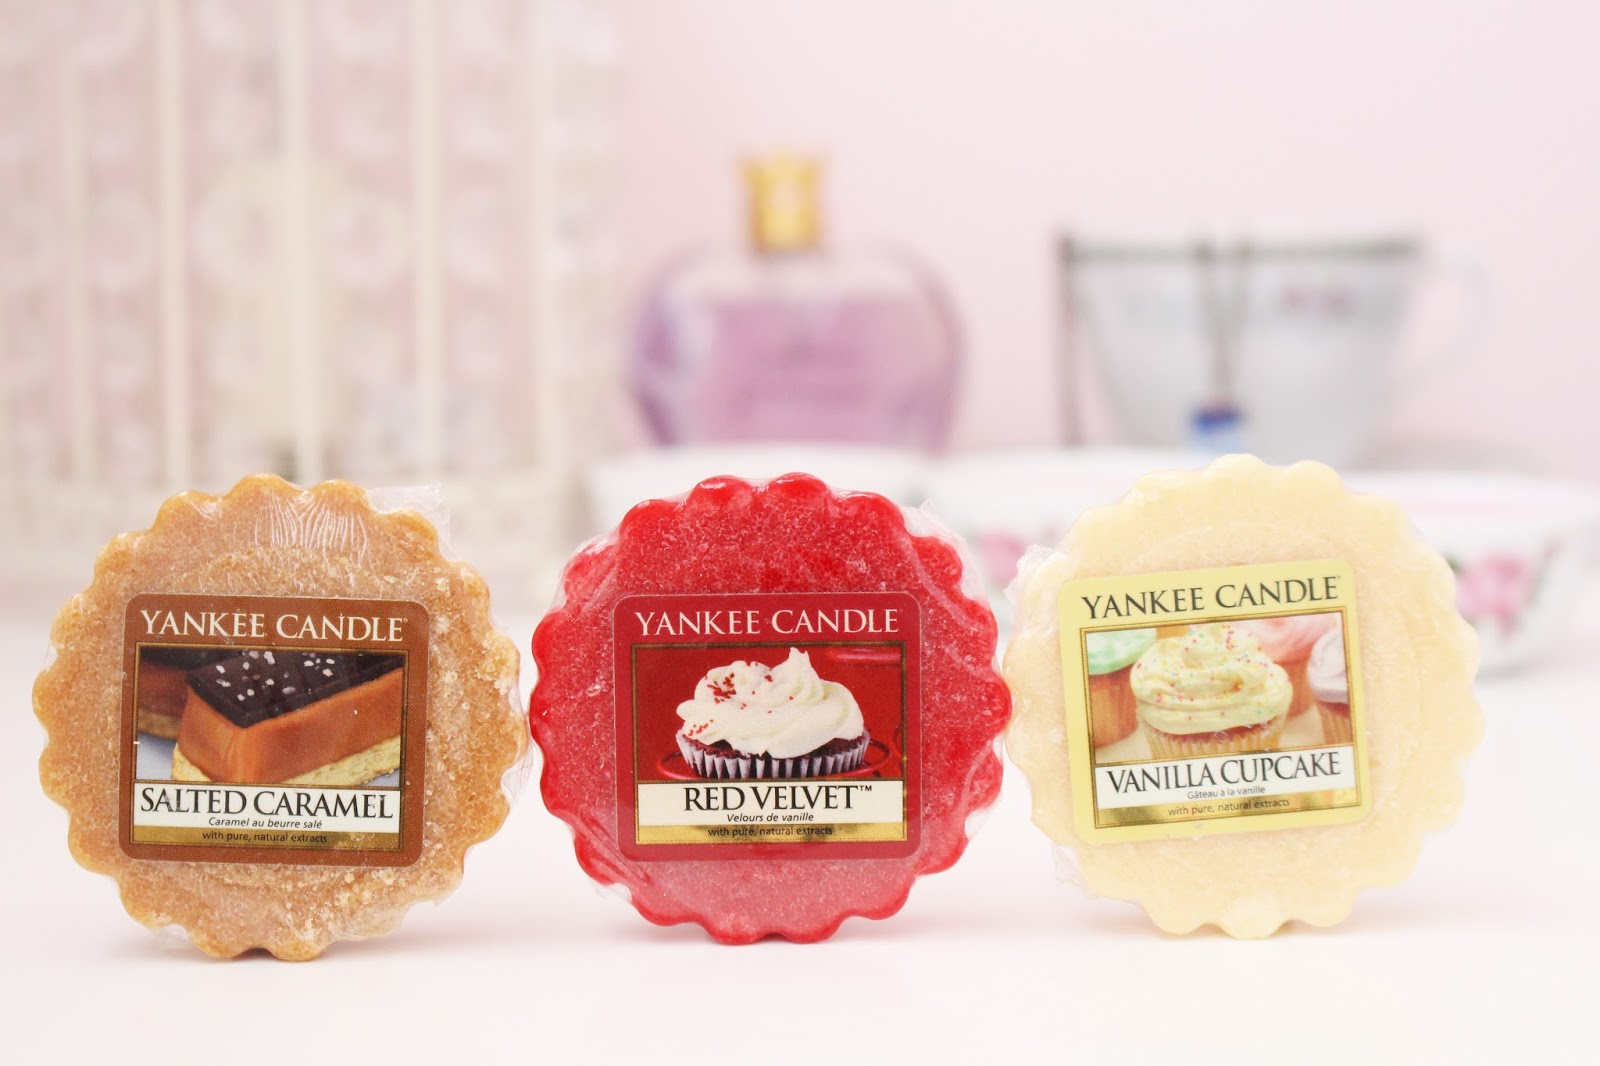 Yankee Candle Salted Caramel, Red Velvet and Vanilla Cupcake Wax Tarts